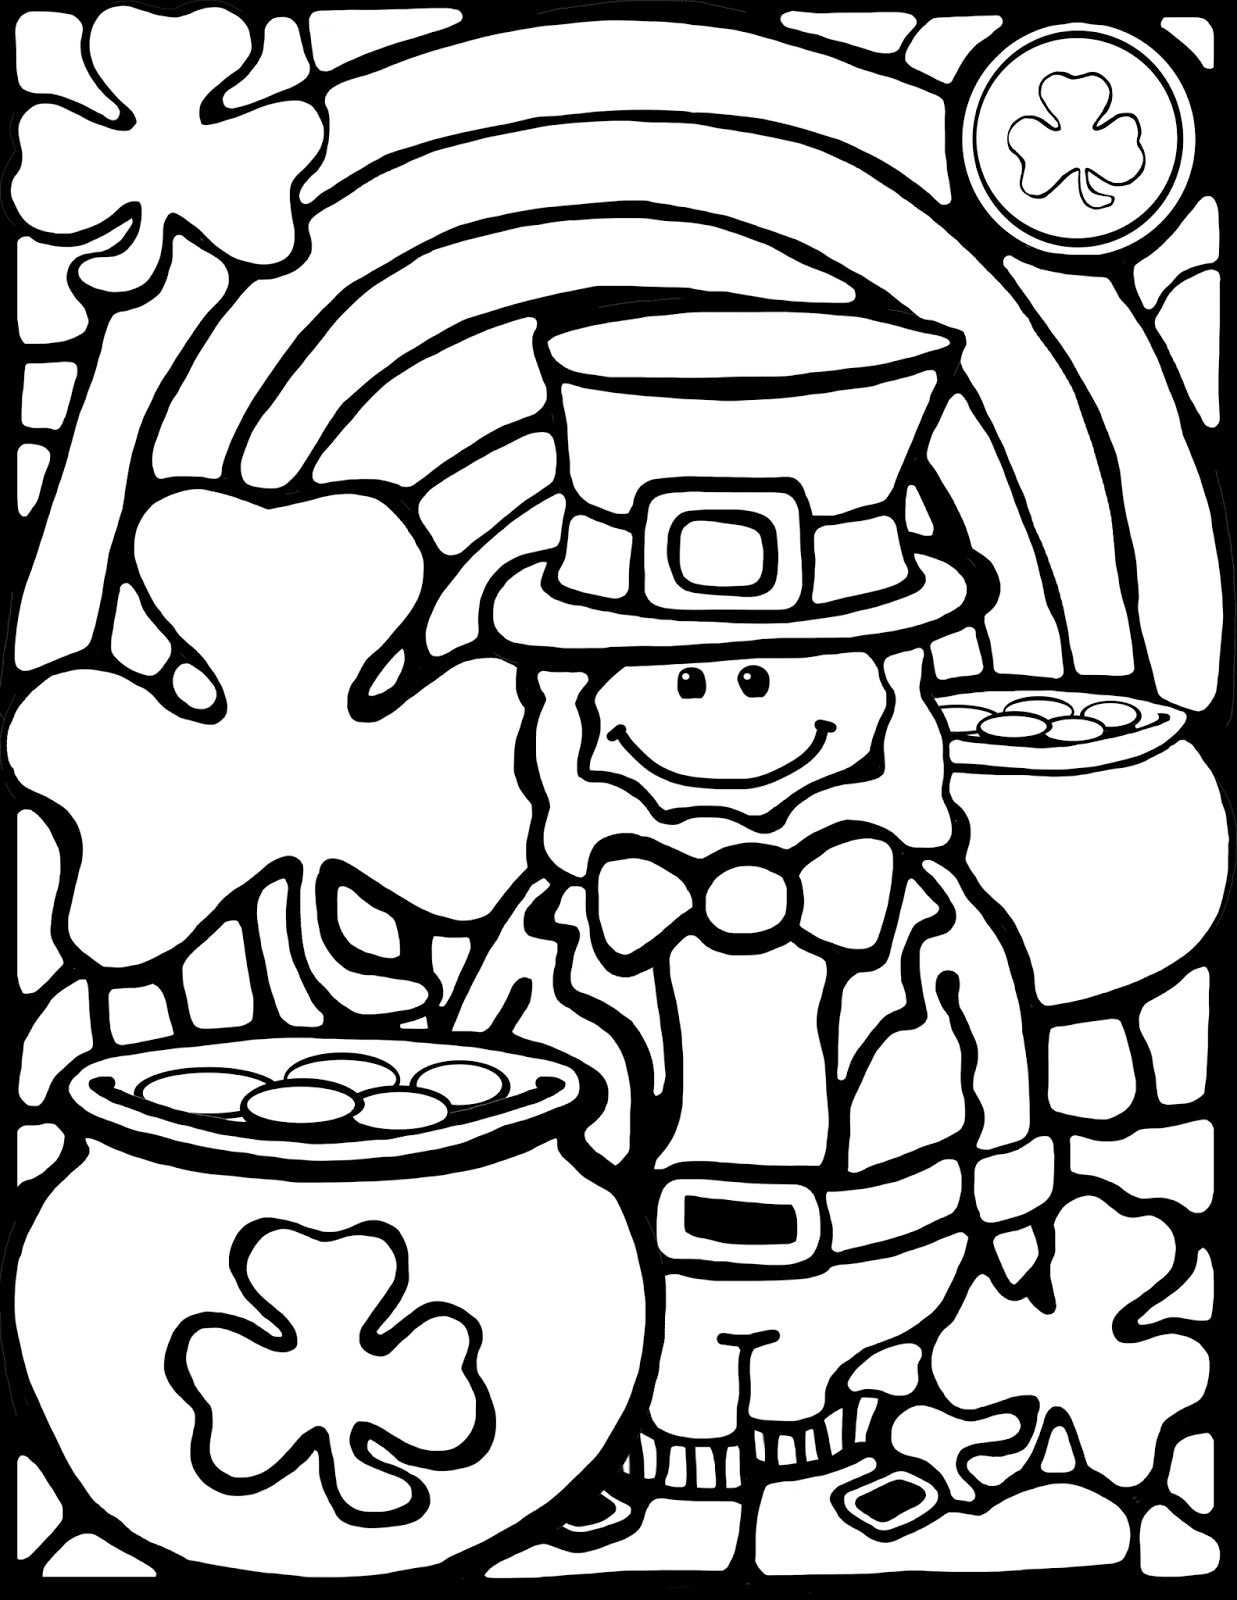 23+ St patricks day coloring pages for adults ideas in 2021